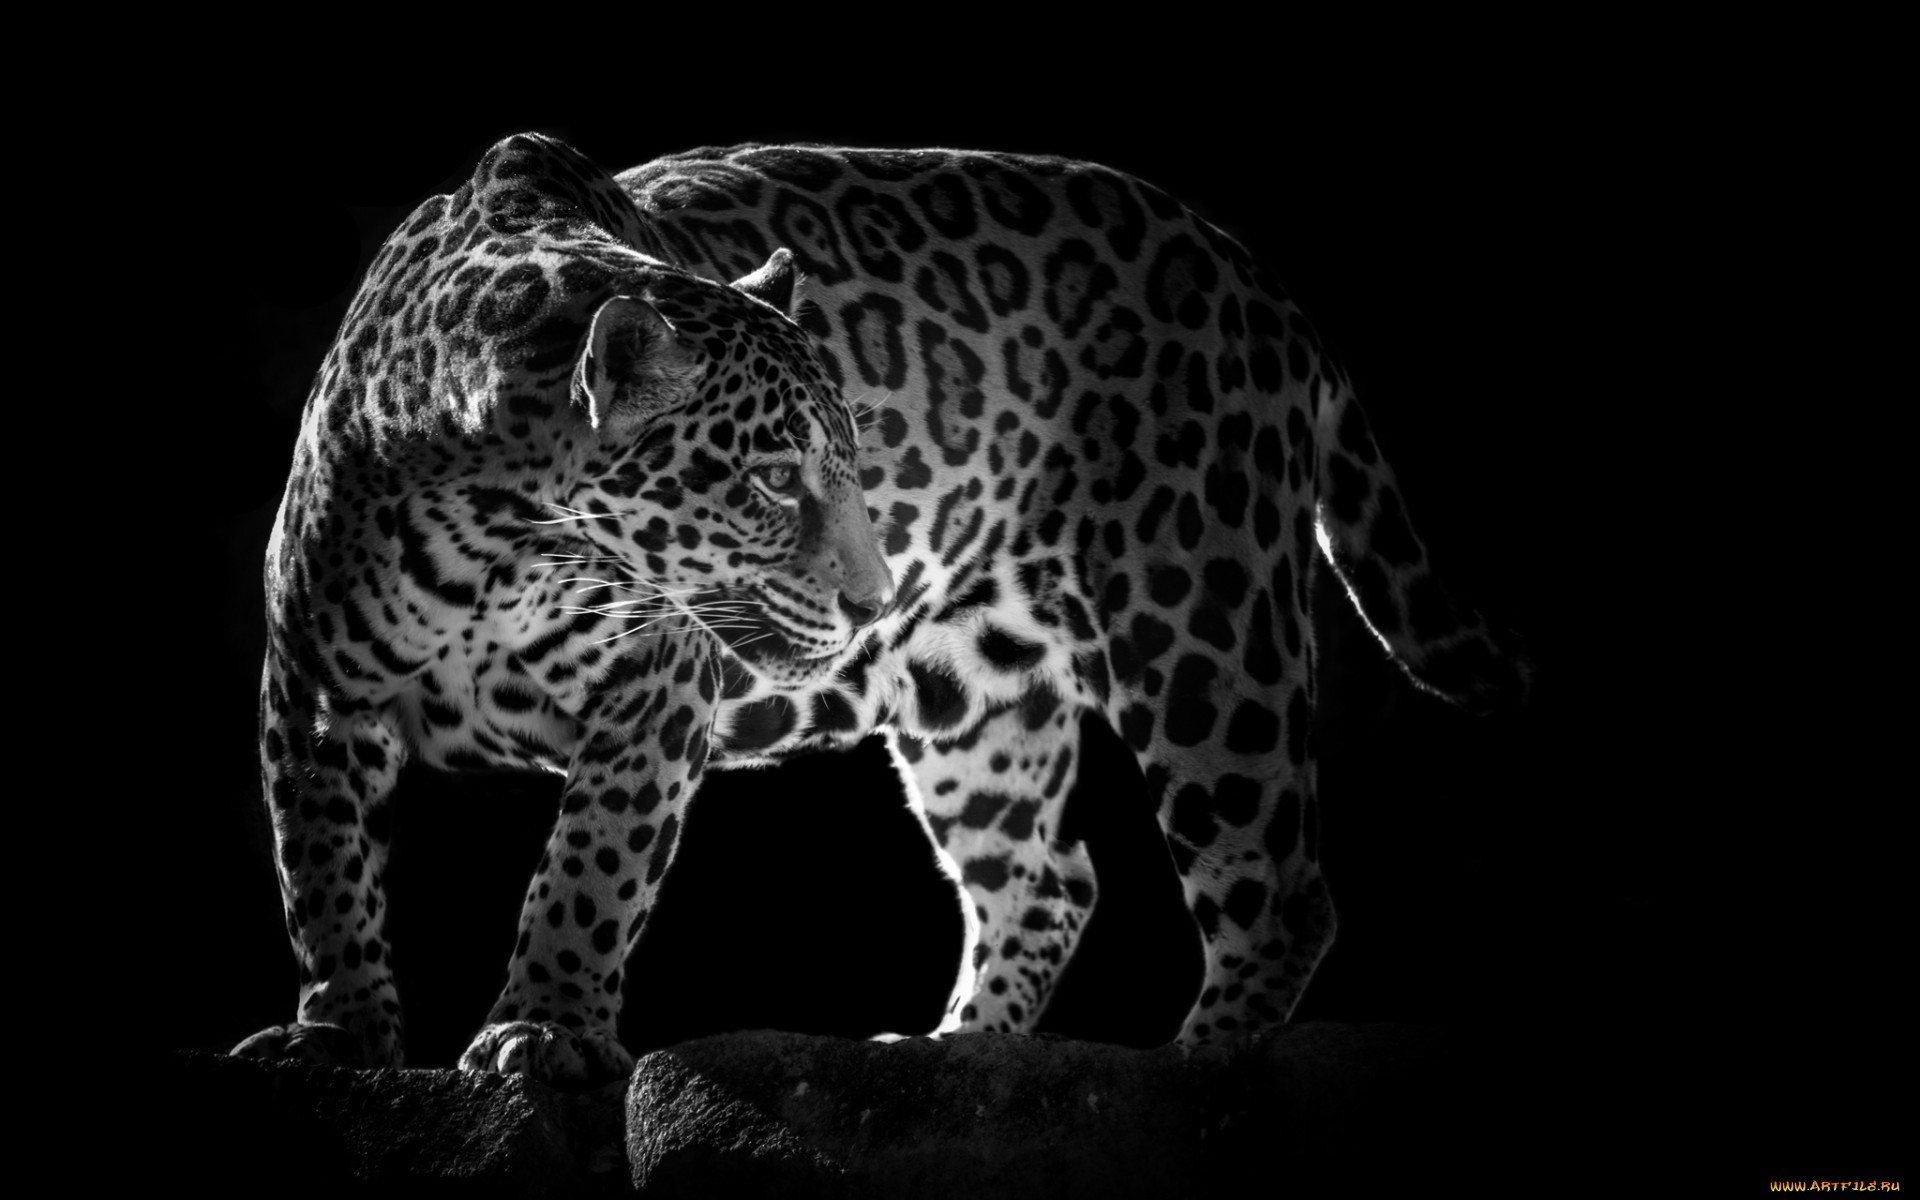 20560 download wallpaper Animals, Leopards screensavers and pictures for free